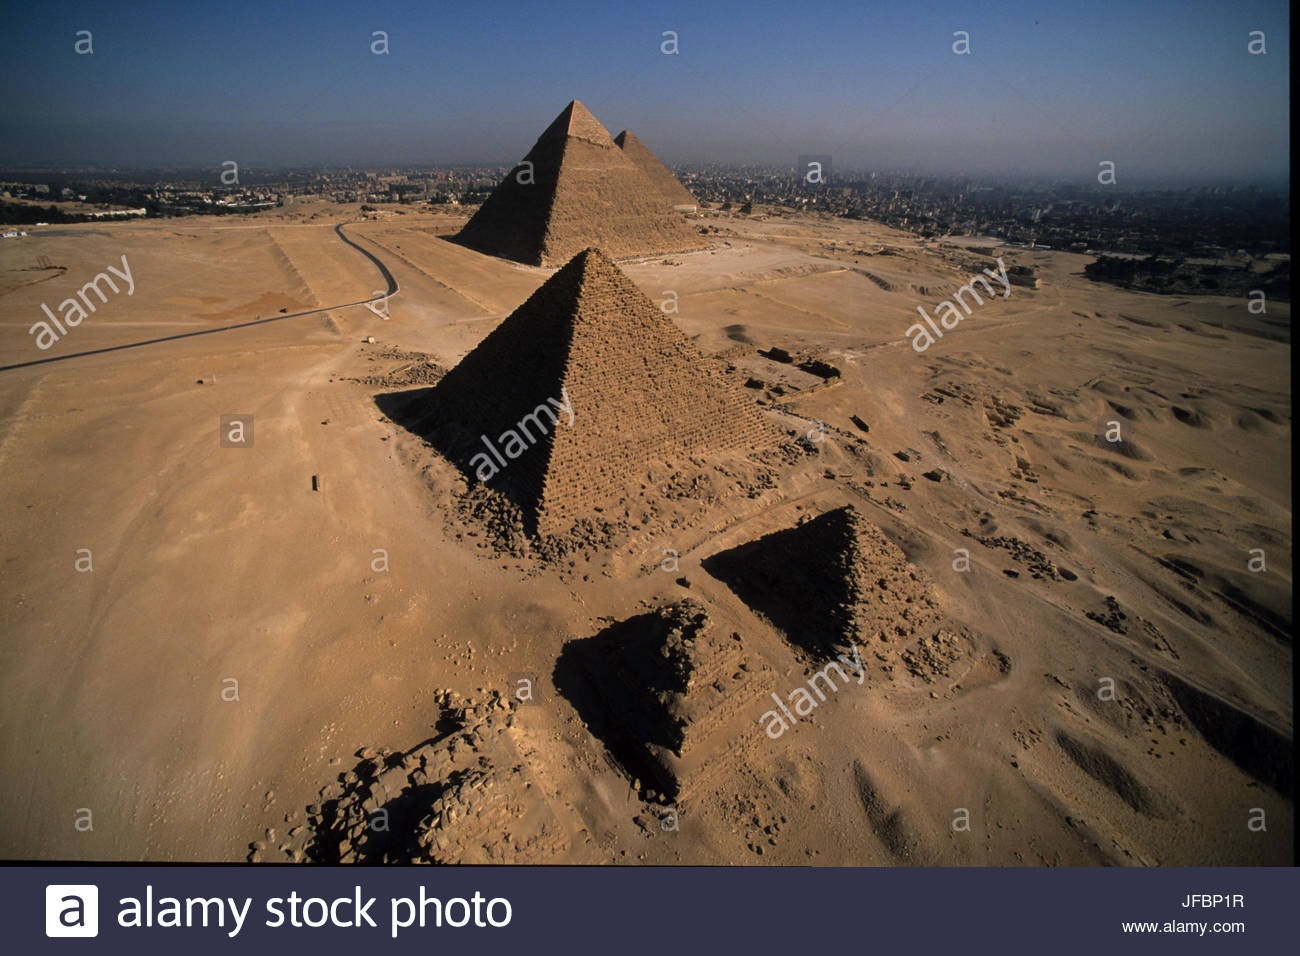 The Pyramids of Giza. - Stock Image